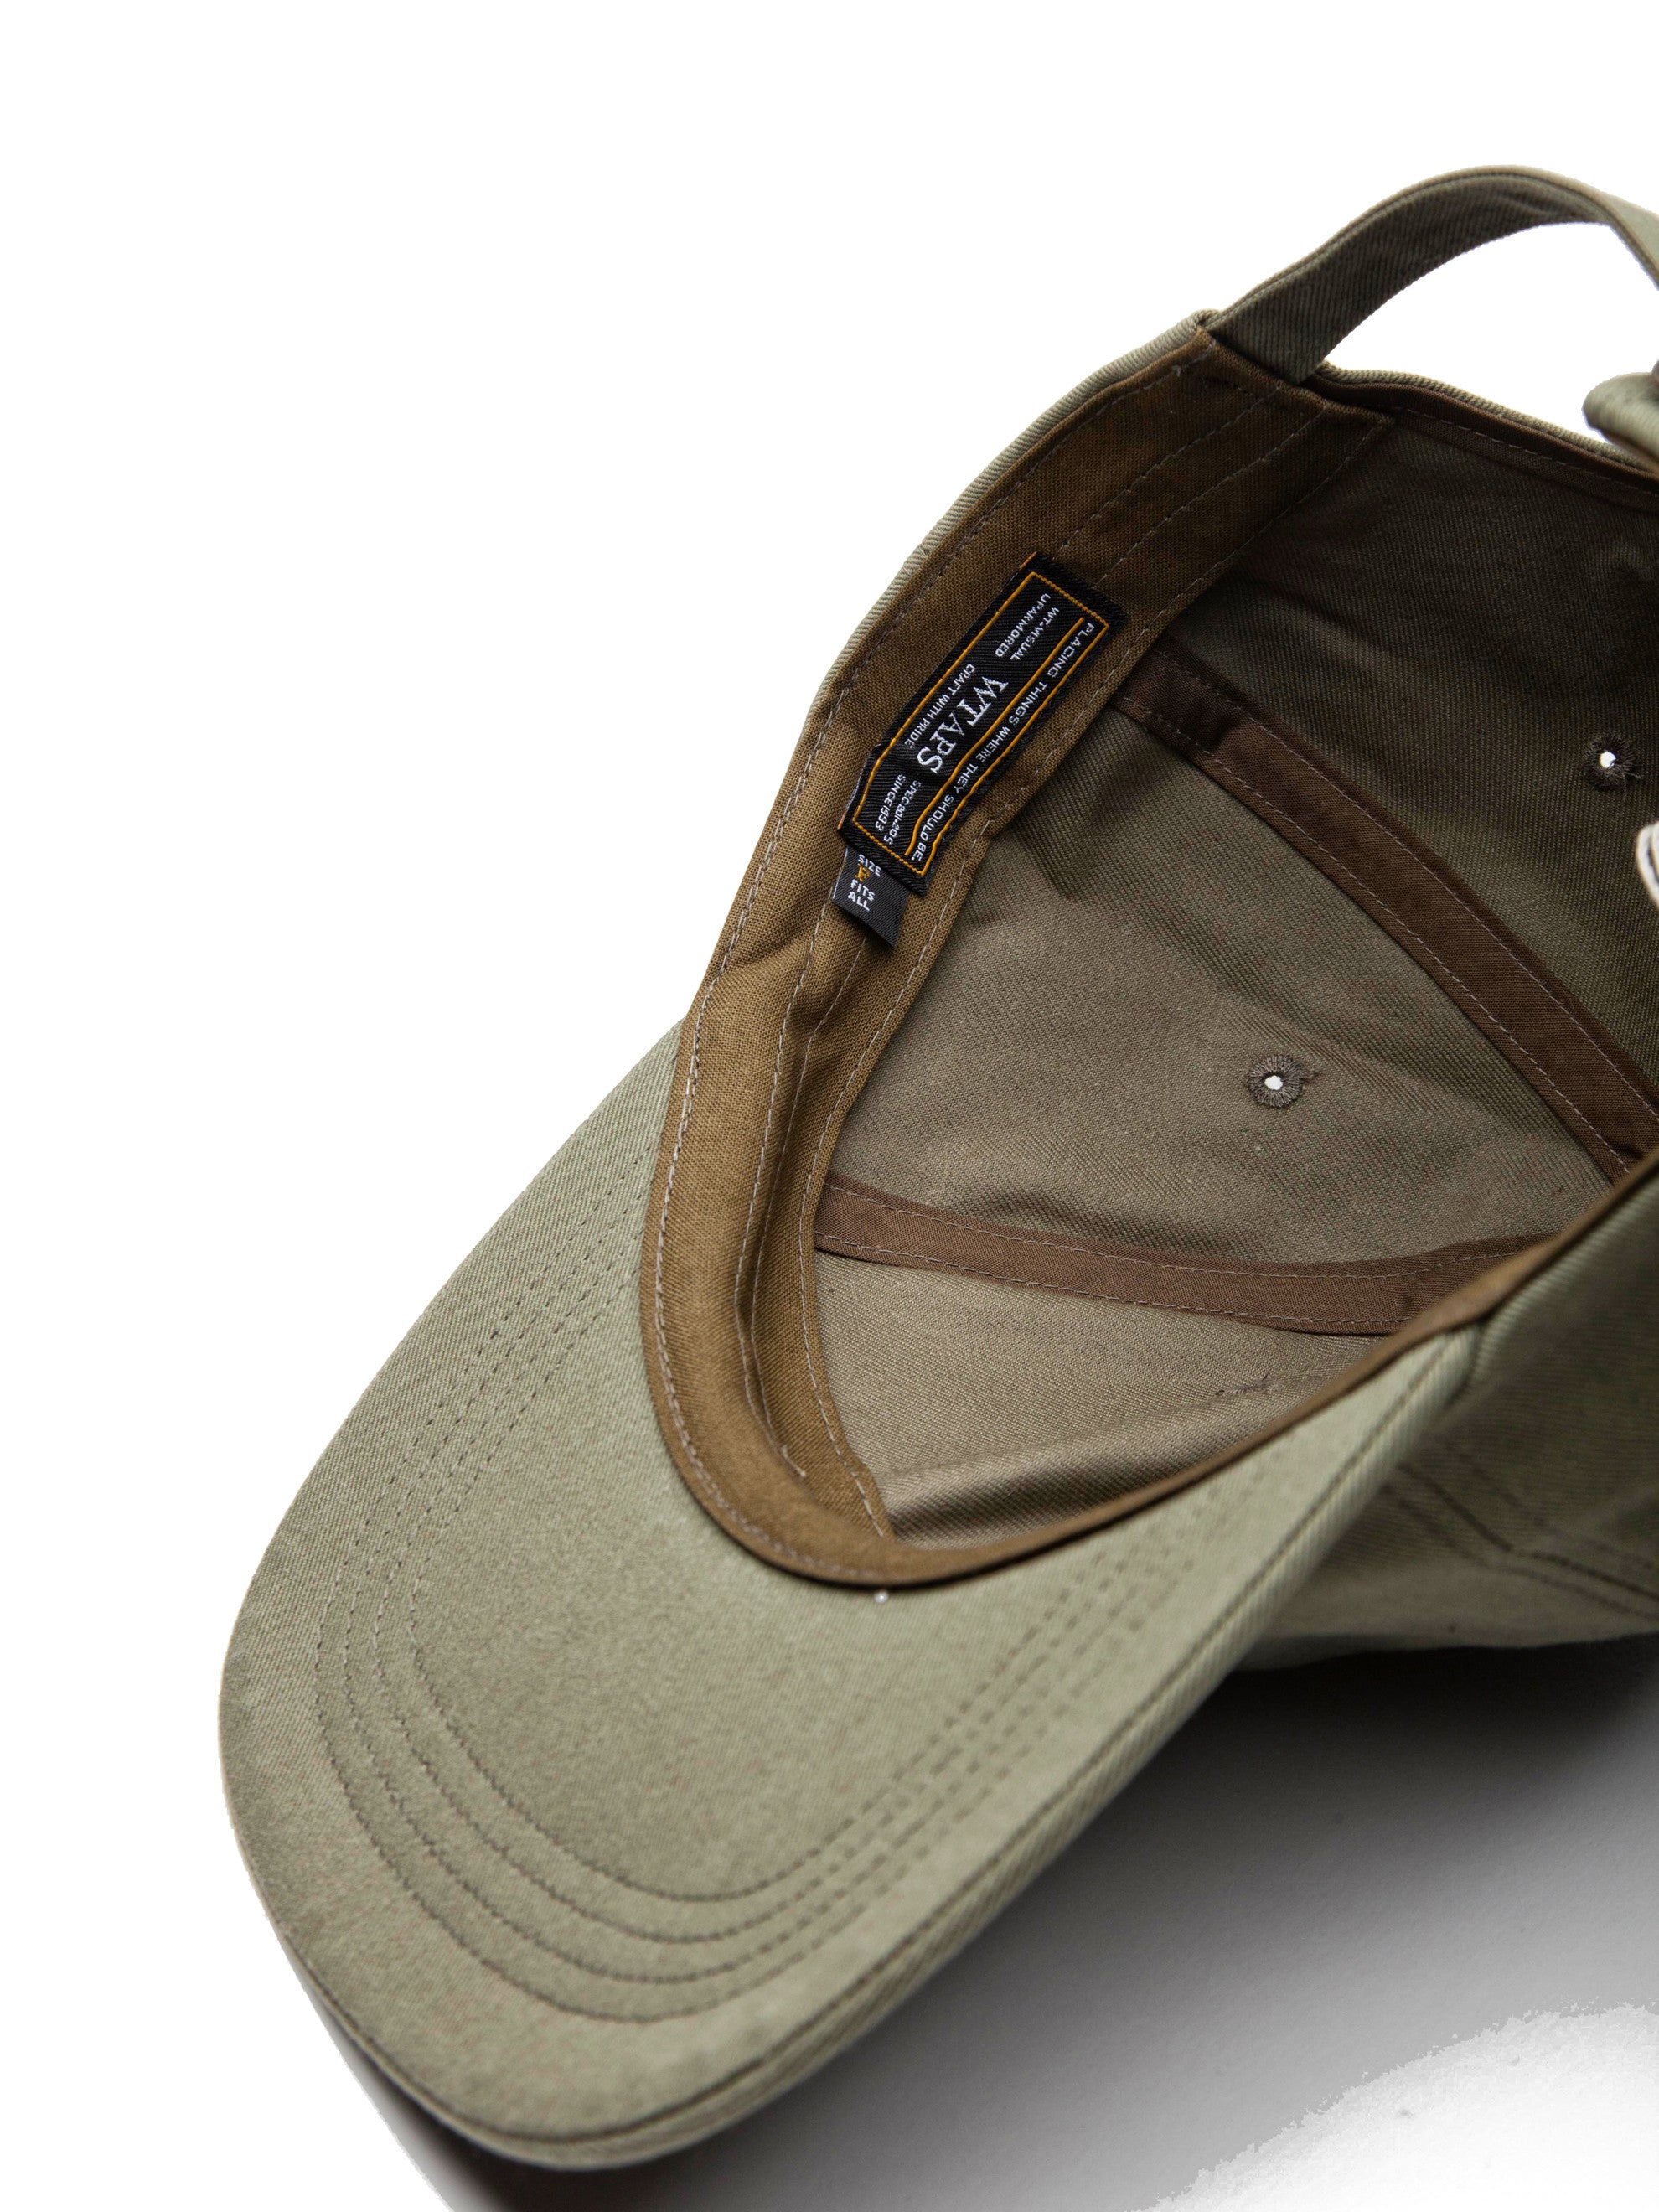 T-6 Cap (Cotton Chino)